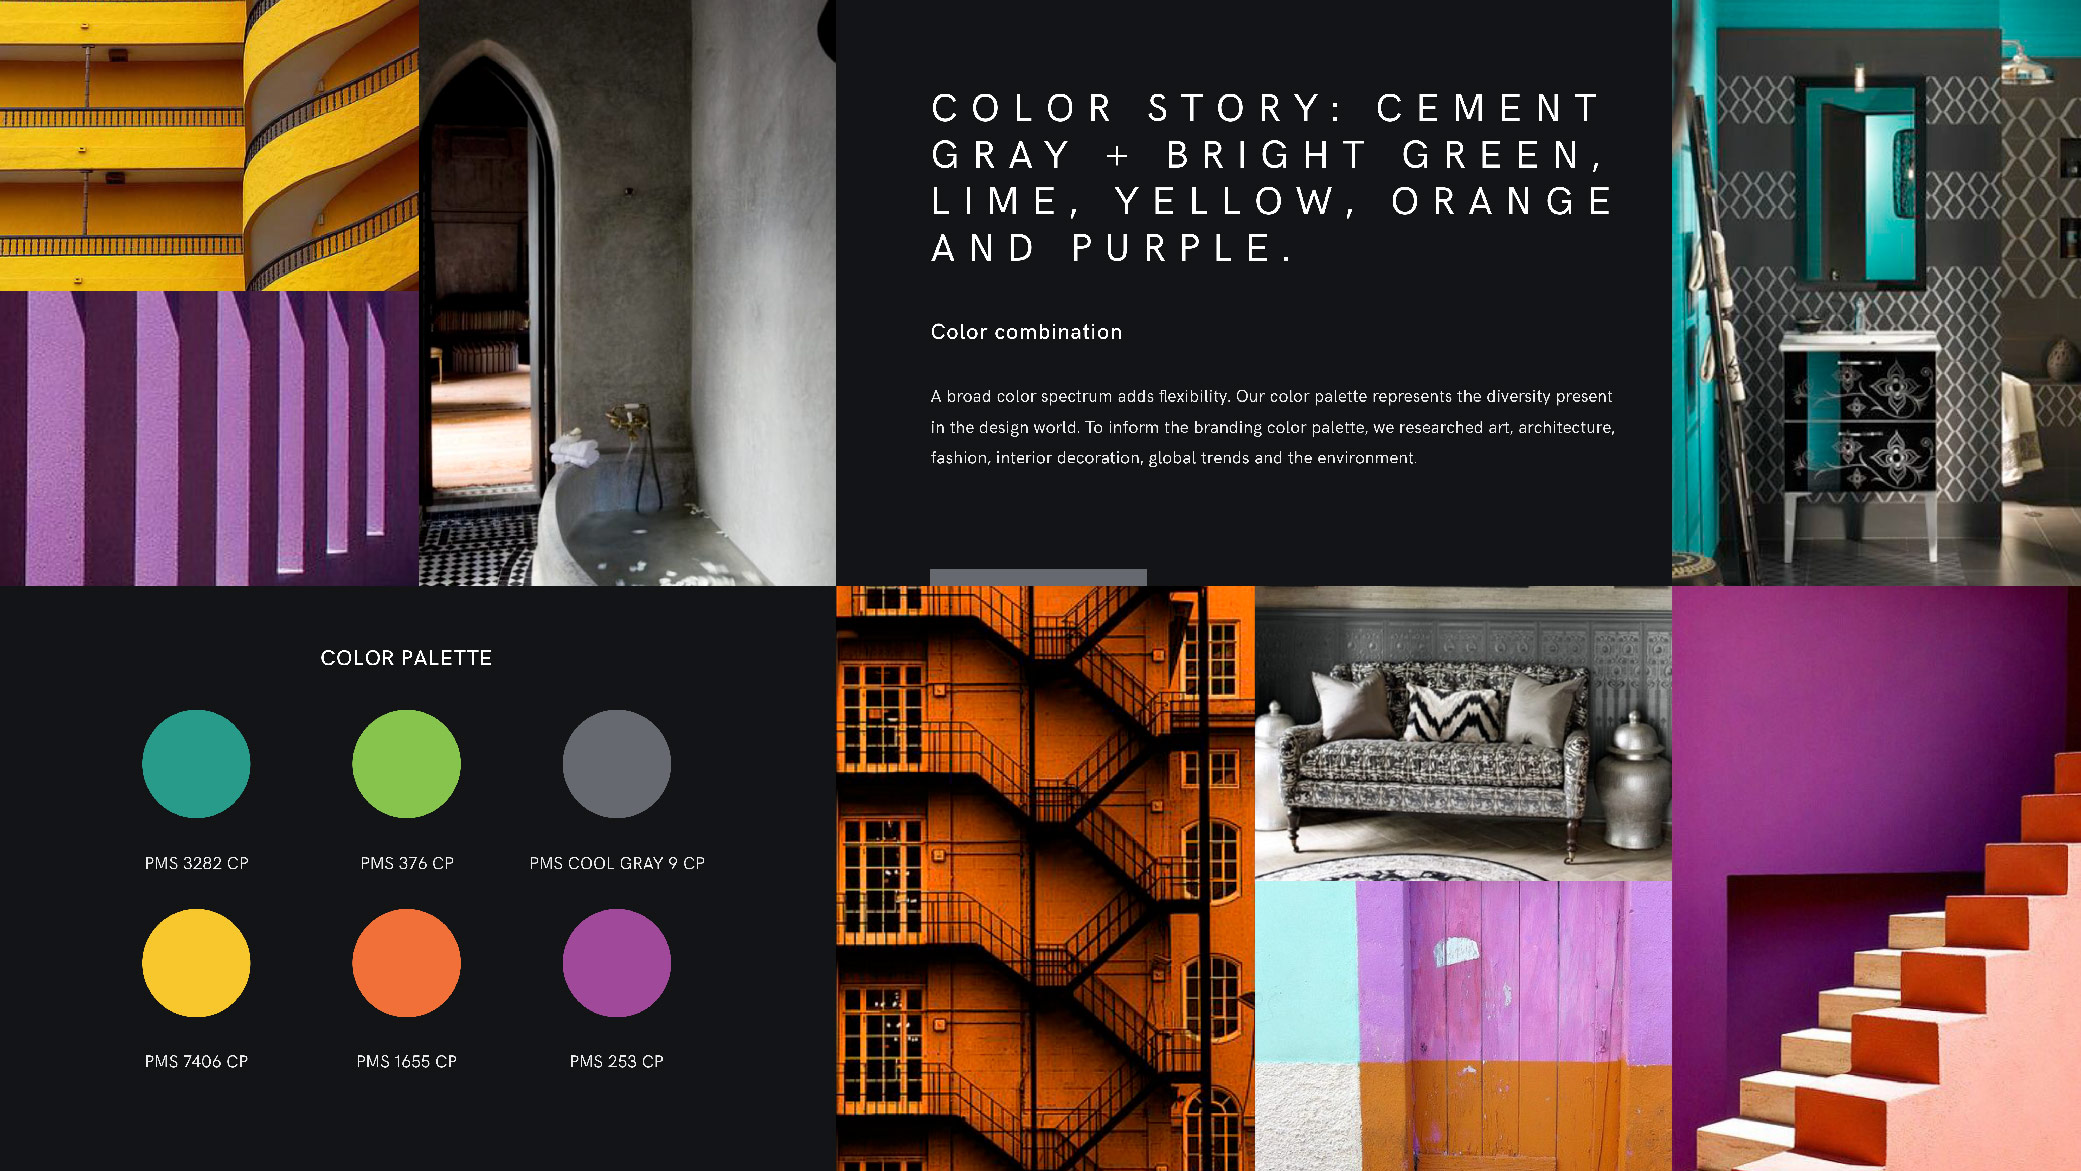 Women in Design brand presentation showcasing color story and palette of yellows, pink, and greens, and inspiration photos.